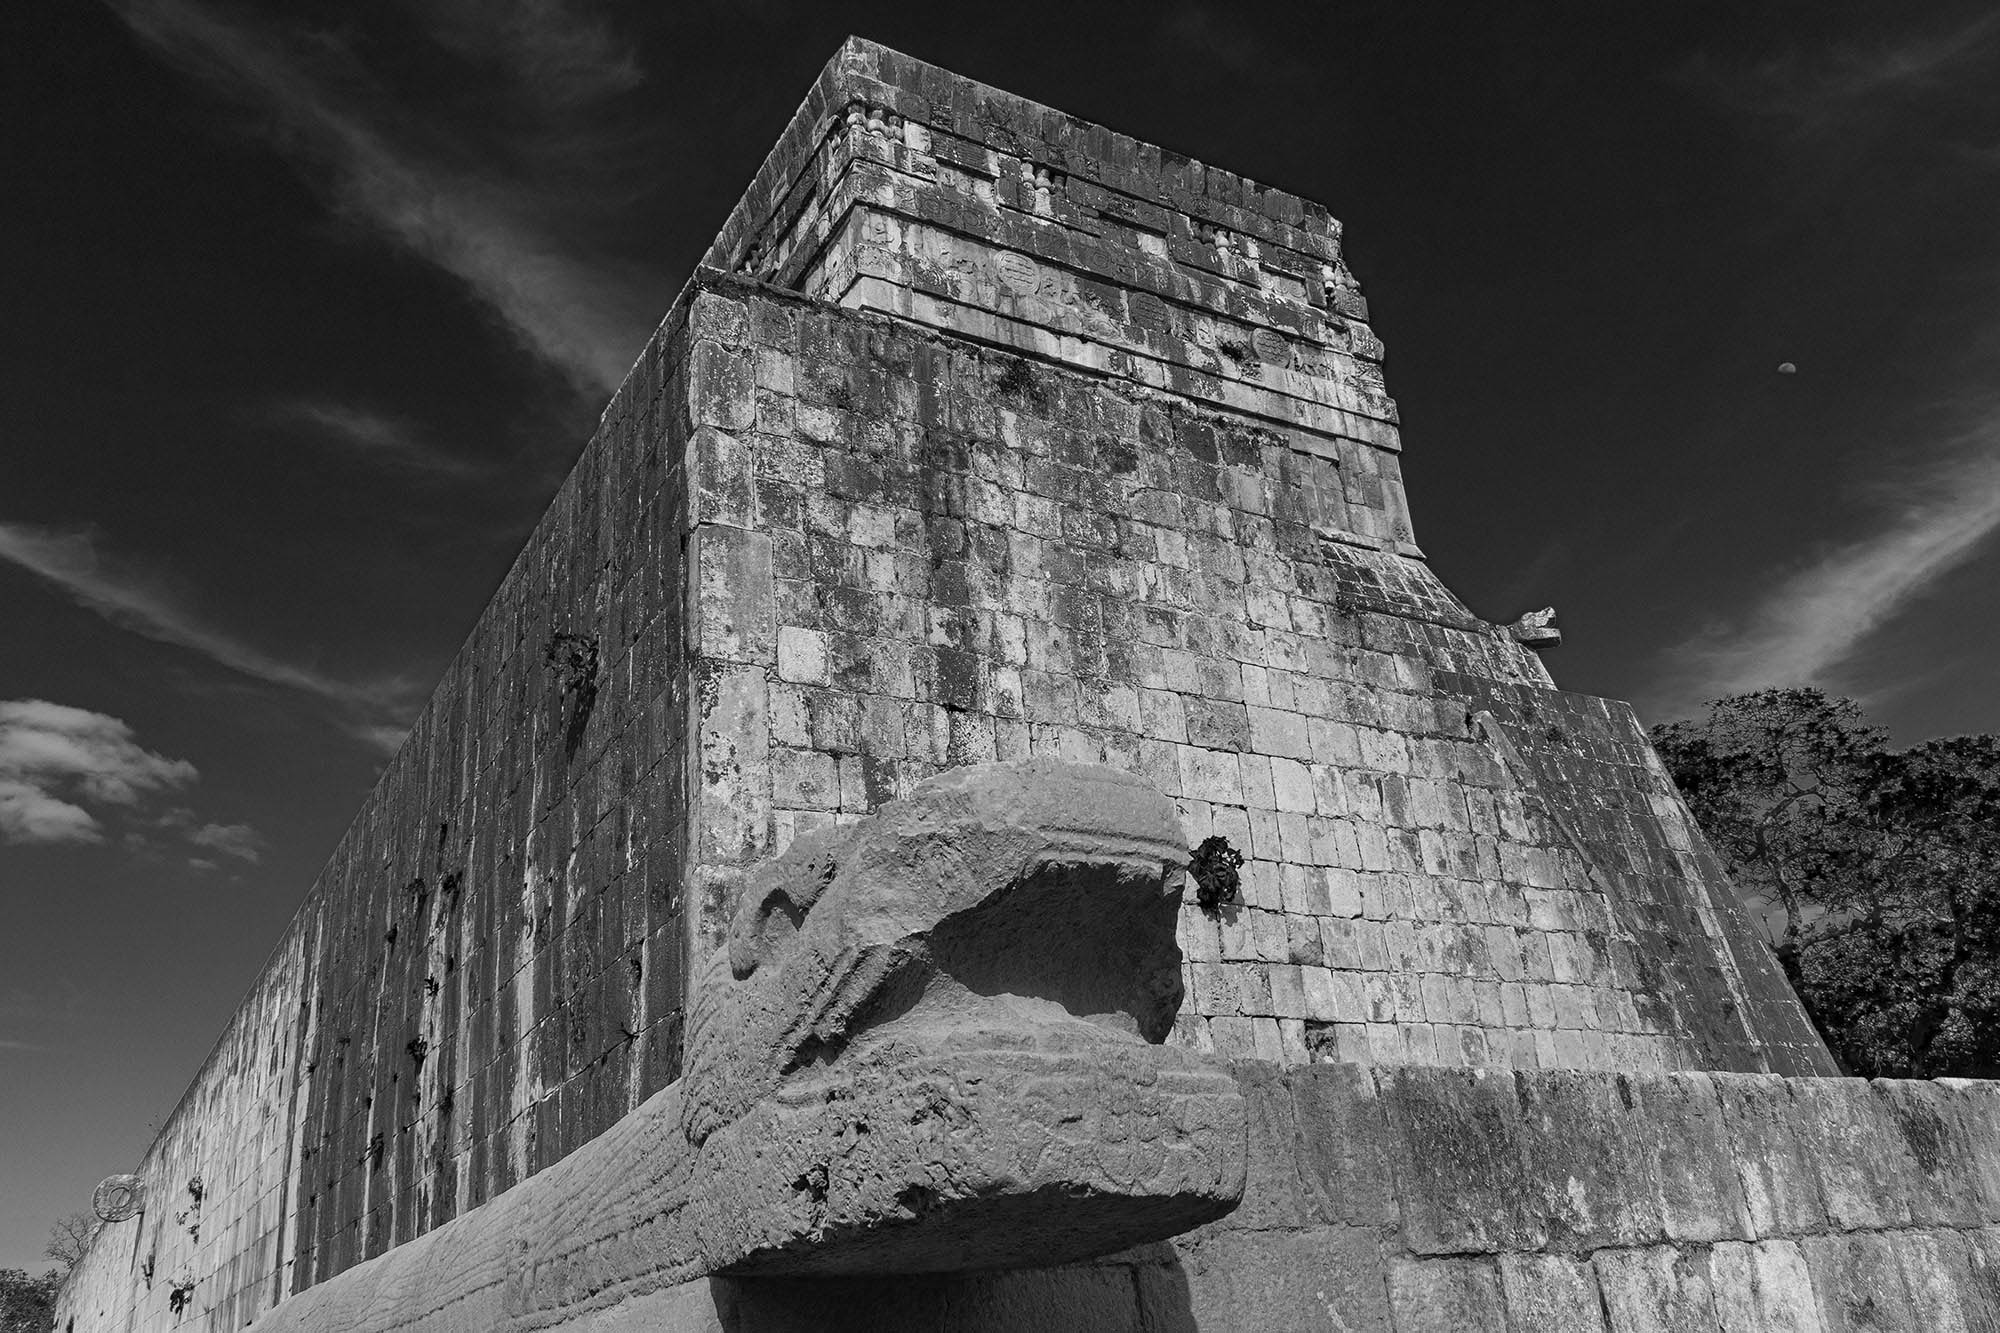 The Temple of the Jaguars in Chichen Itza